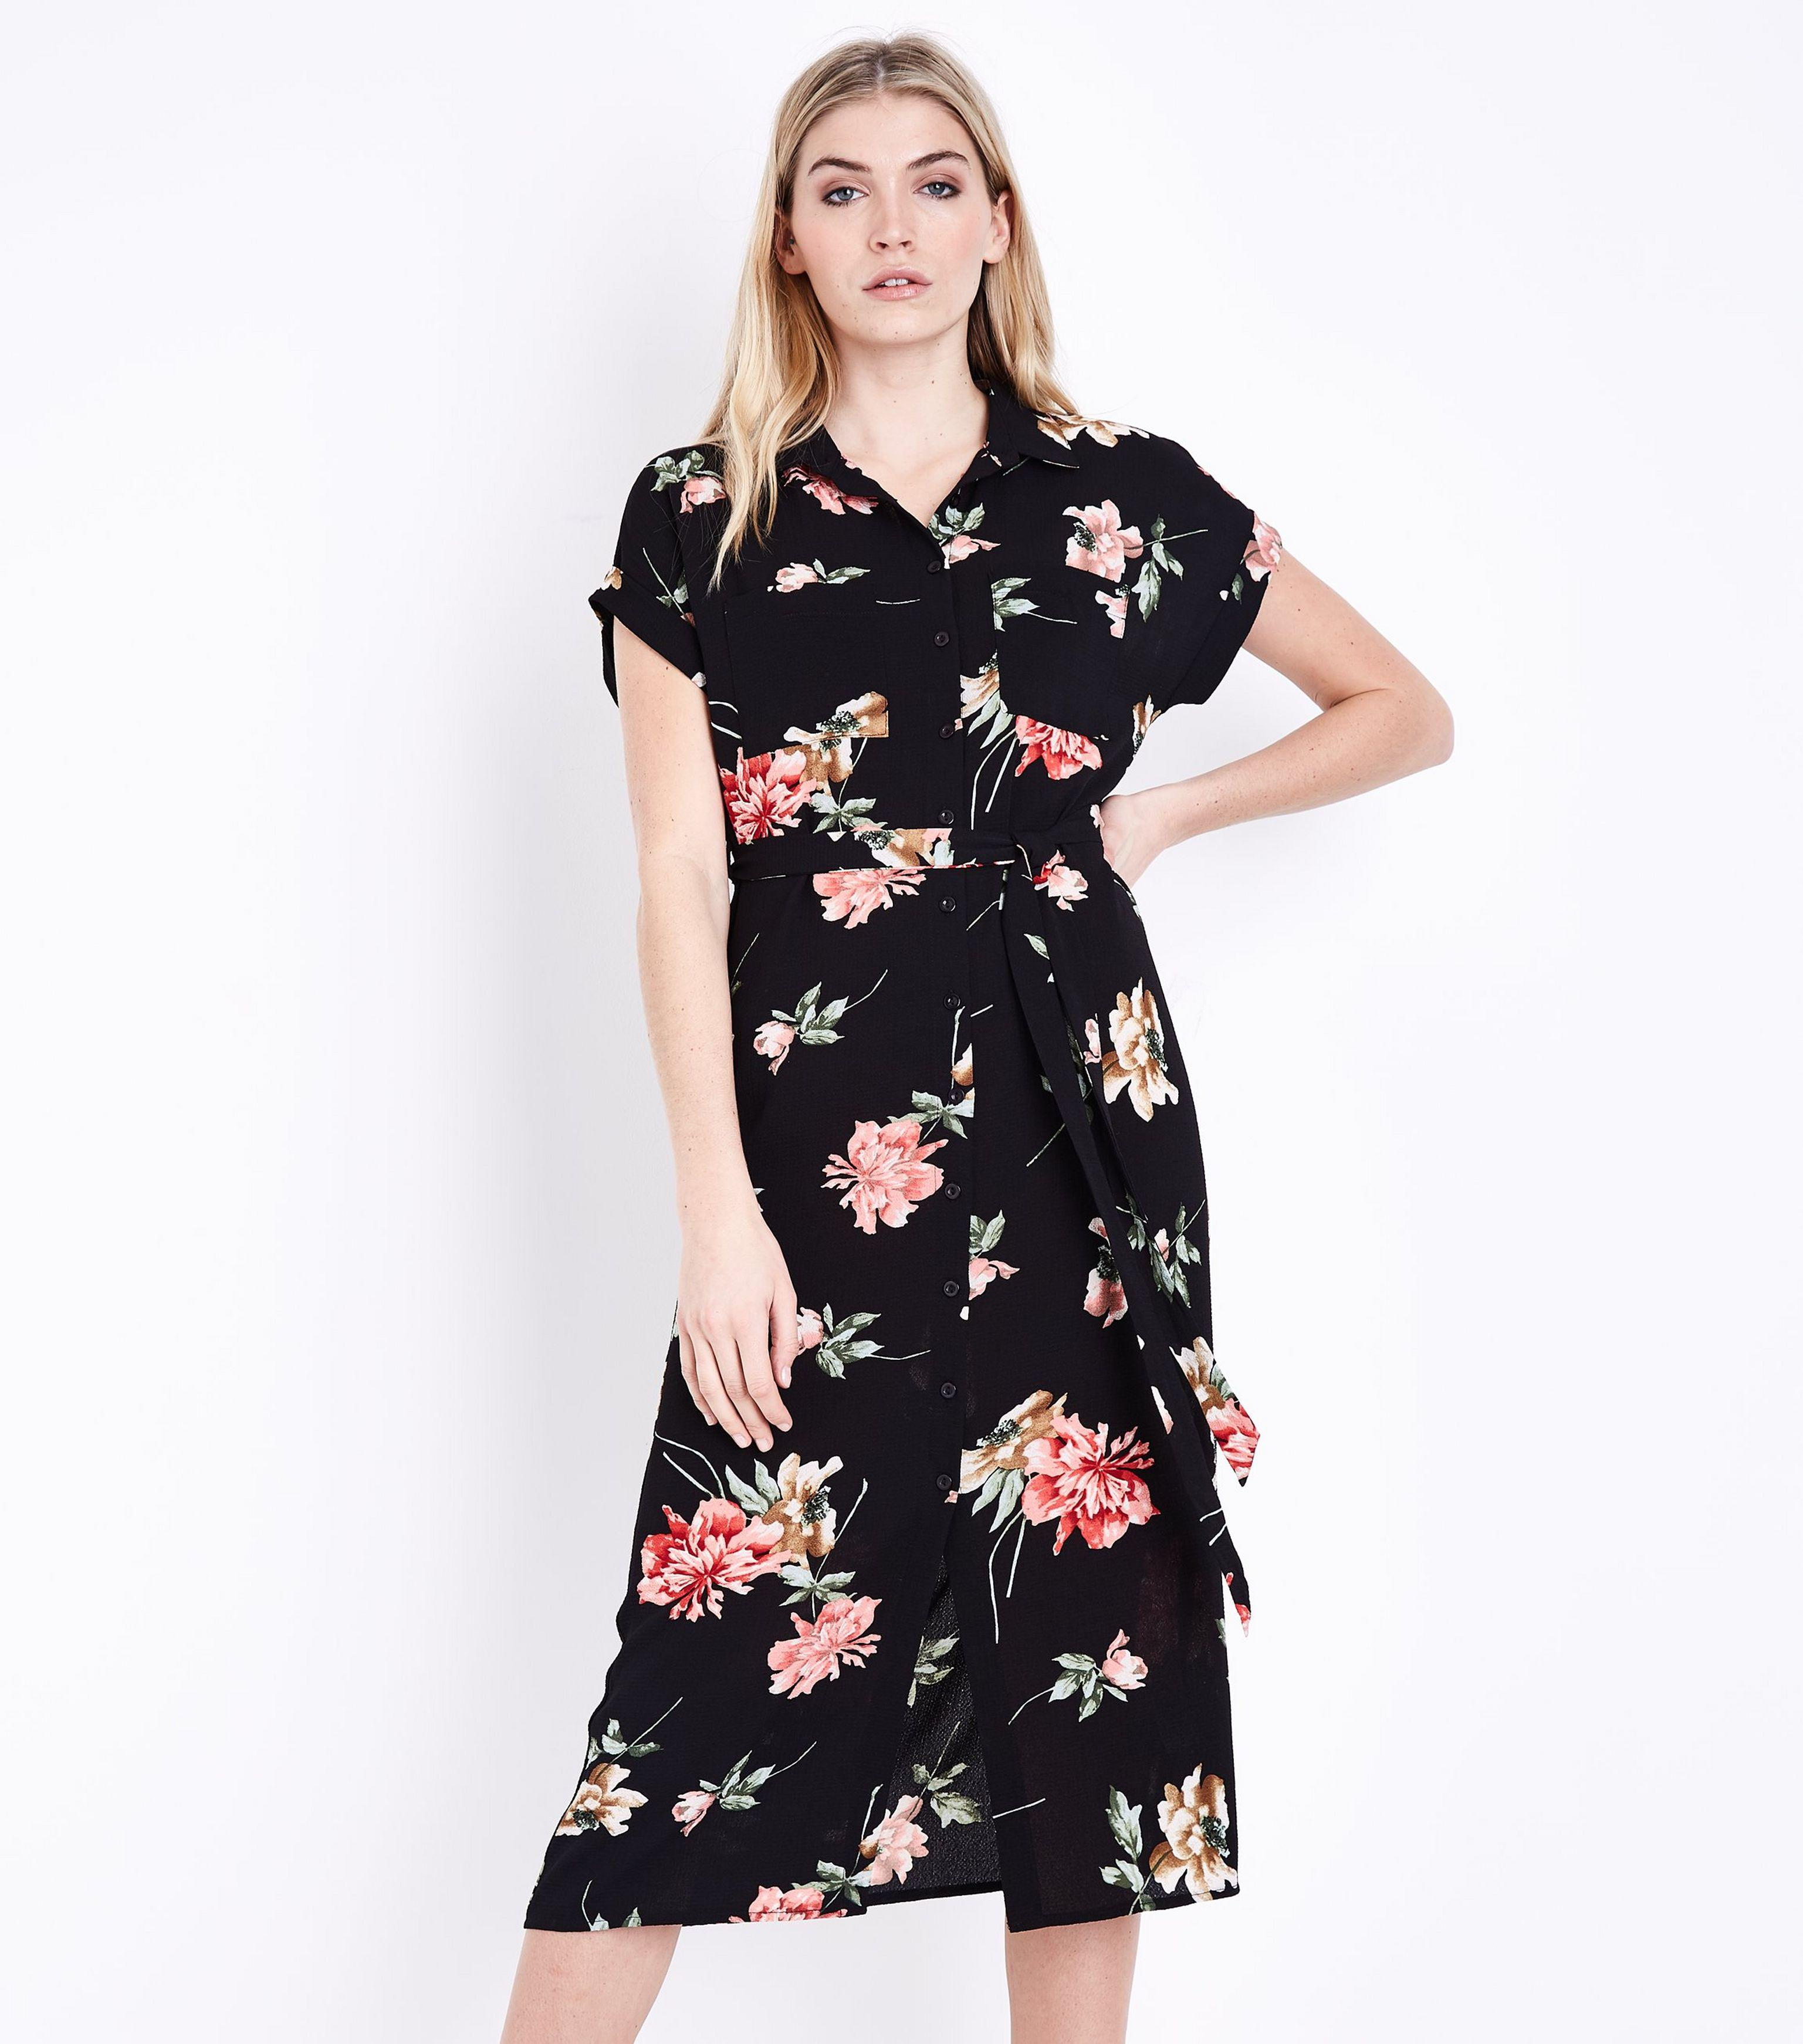 c89951a563d7 Black Floral Midi Shirt Dress